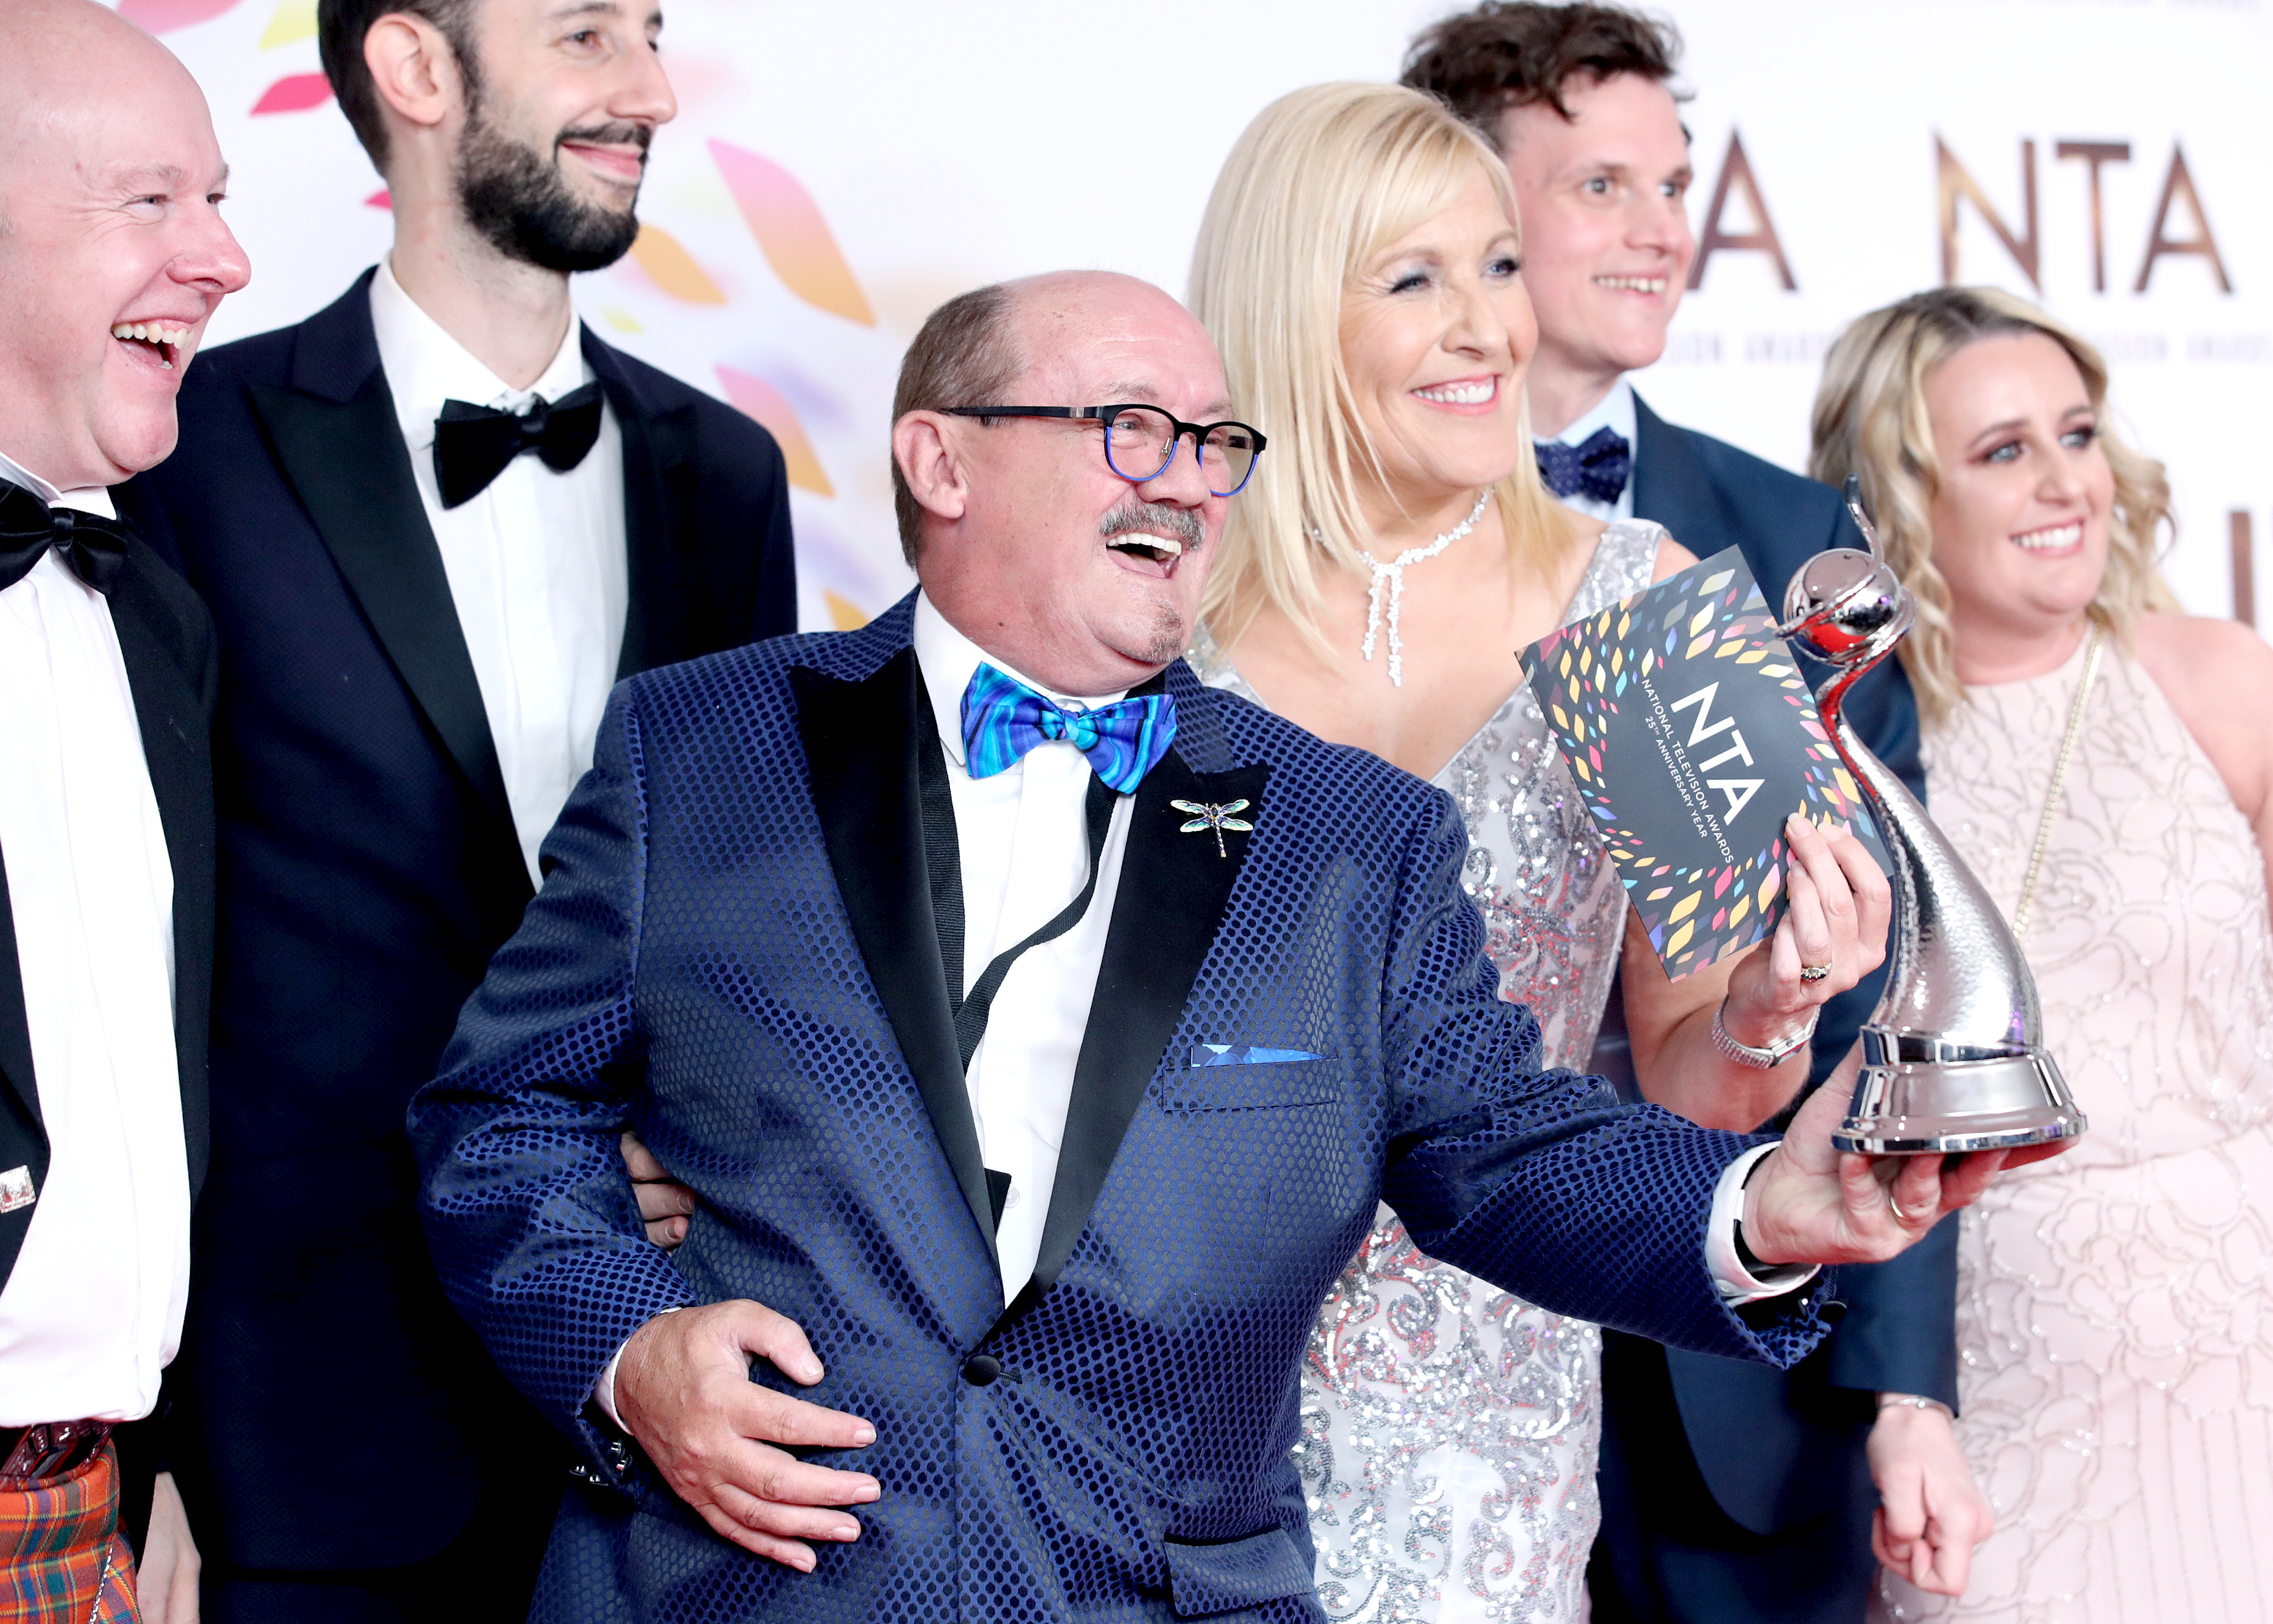 """Brendan O'Carroll accepting the Comedy award for """"Mrs Brown's Boys"""", pose in the winners room  during the National Television Awards 2020 at The O2 Arena on January 28, 2020 in London, England. (Photo by Mike Marsland/WireImage)"""